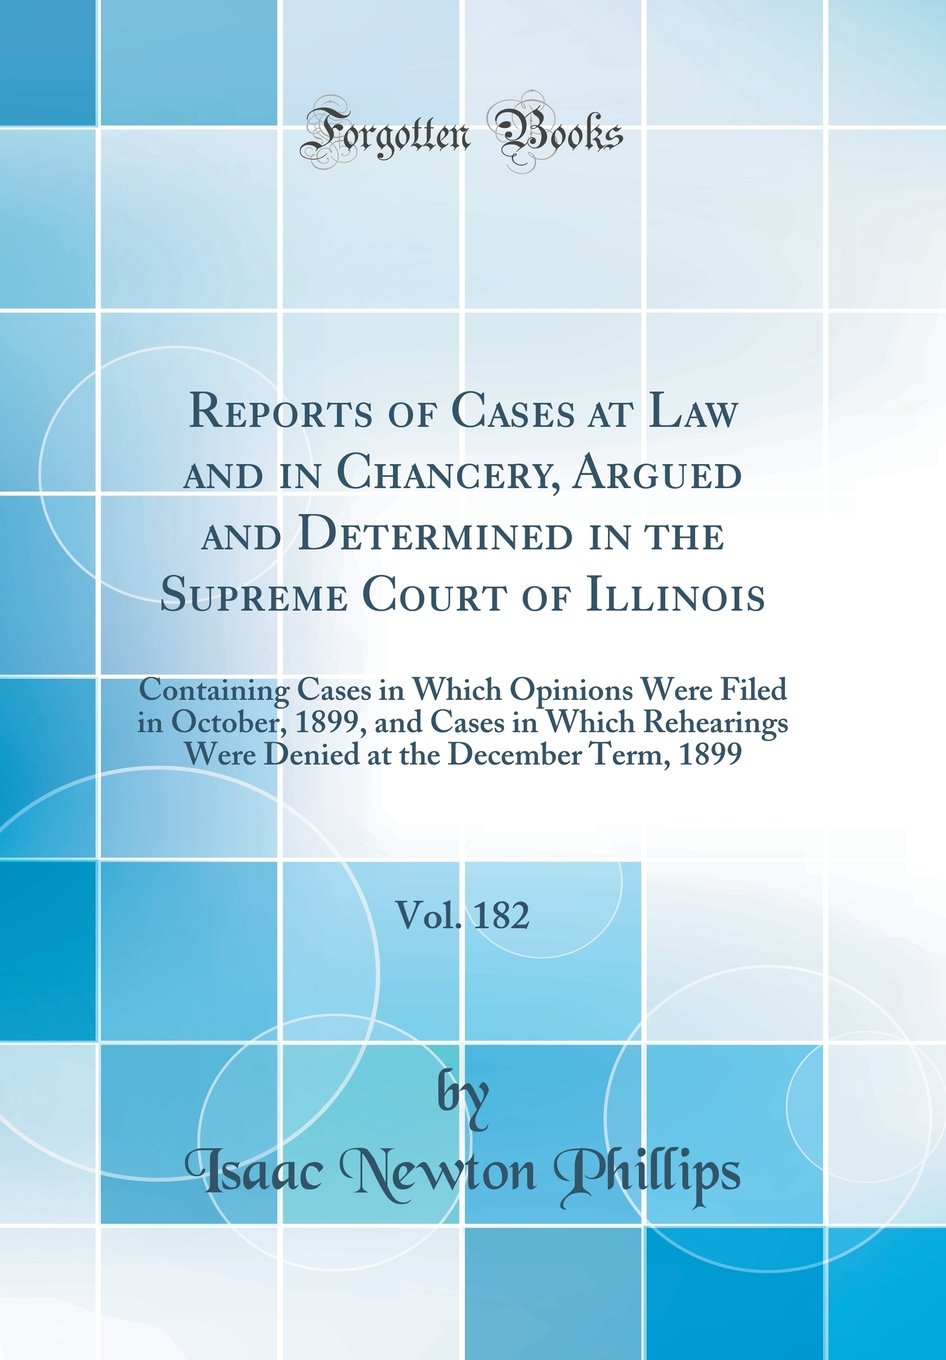 Read Online Reports of Cases at Law and in Chancery, Argued and Determined in the Supreme Court of Illinois, Vol. 182: Containing Cases in Which Opinions Were ... Were Denied at the December Term, 1899 PDF